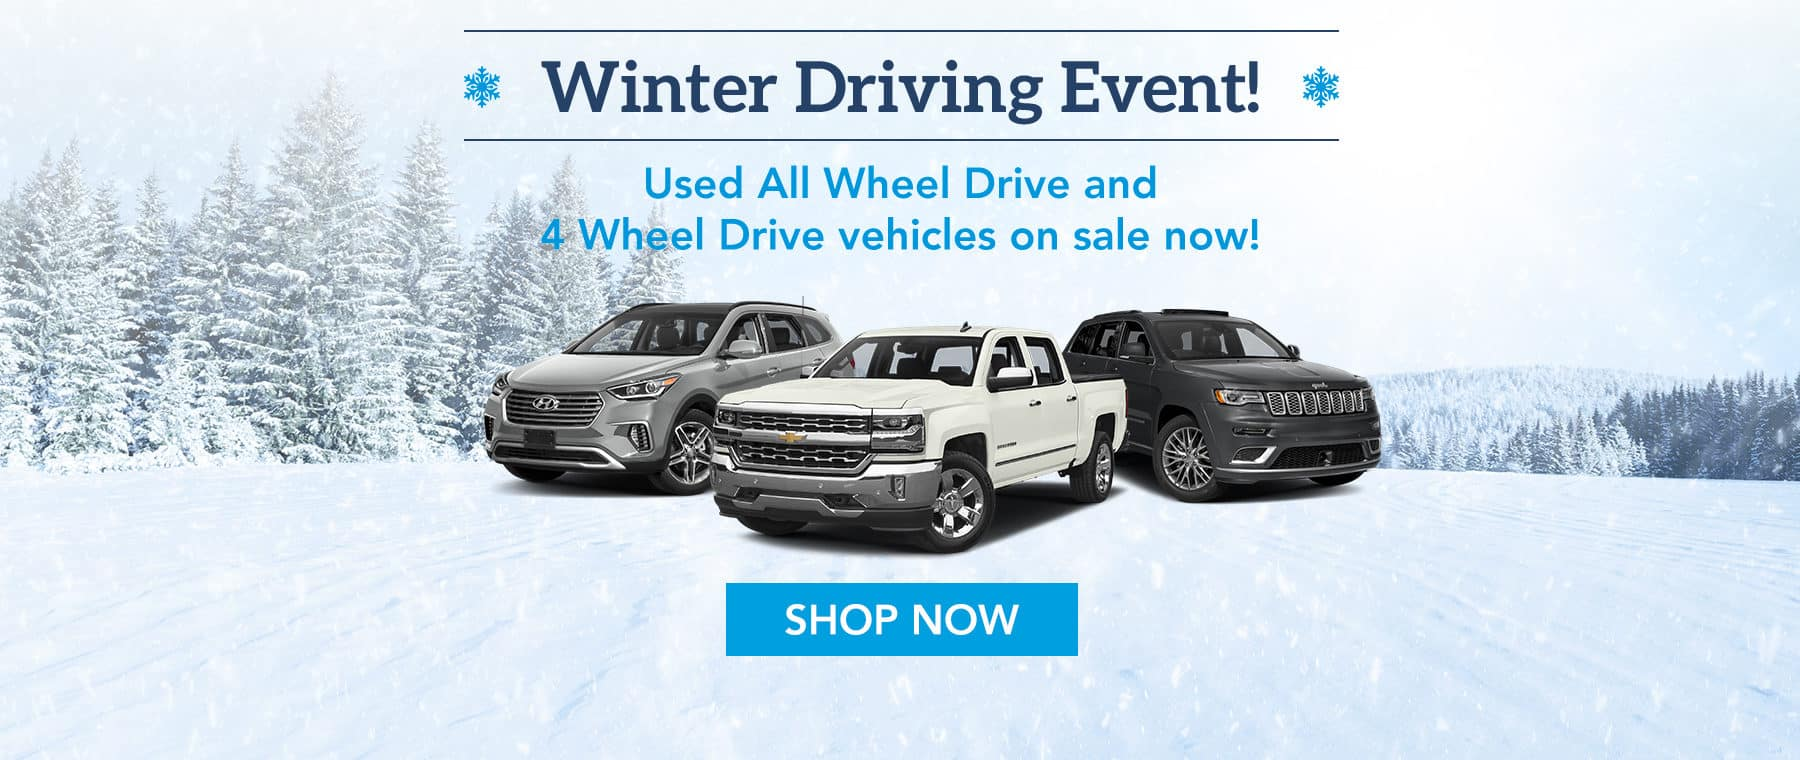 Silko Honda Winter Event